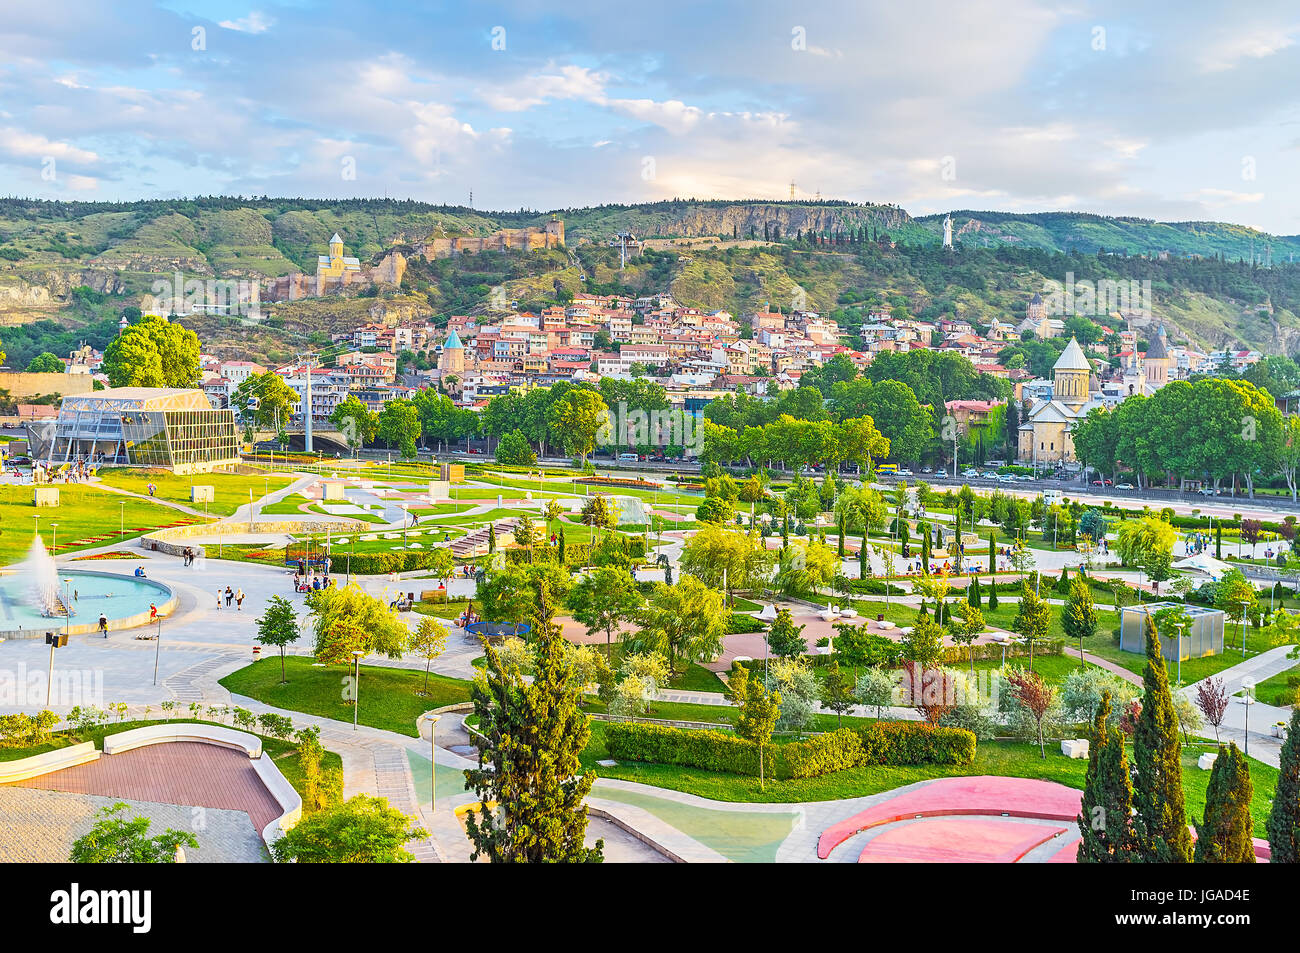 The Avlabari neighborhood boasts the picturesque Rike park, perfect place for family rest, enjoying landscaping, Stock Photo